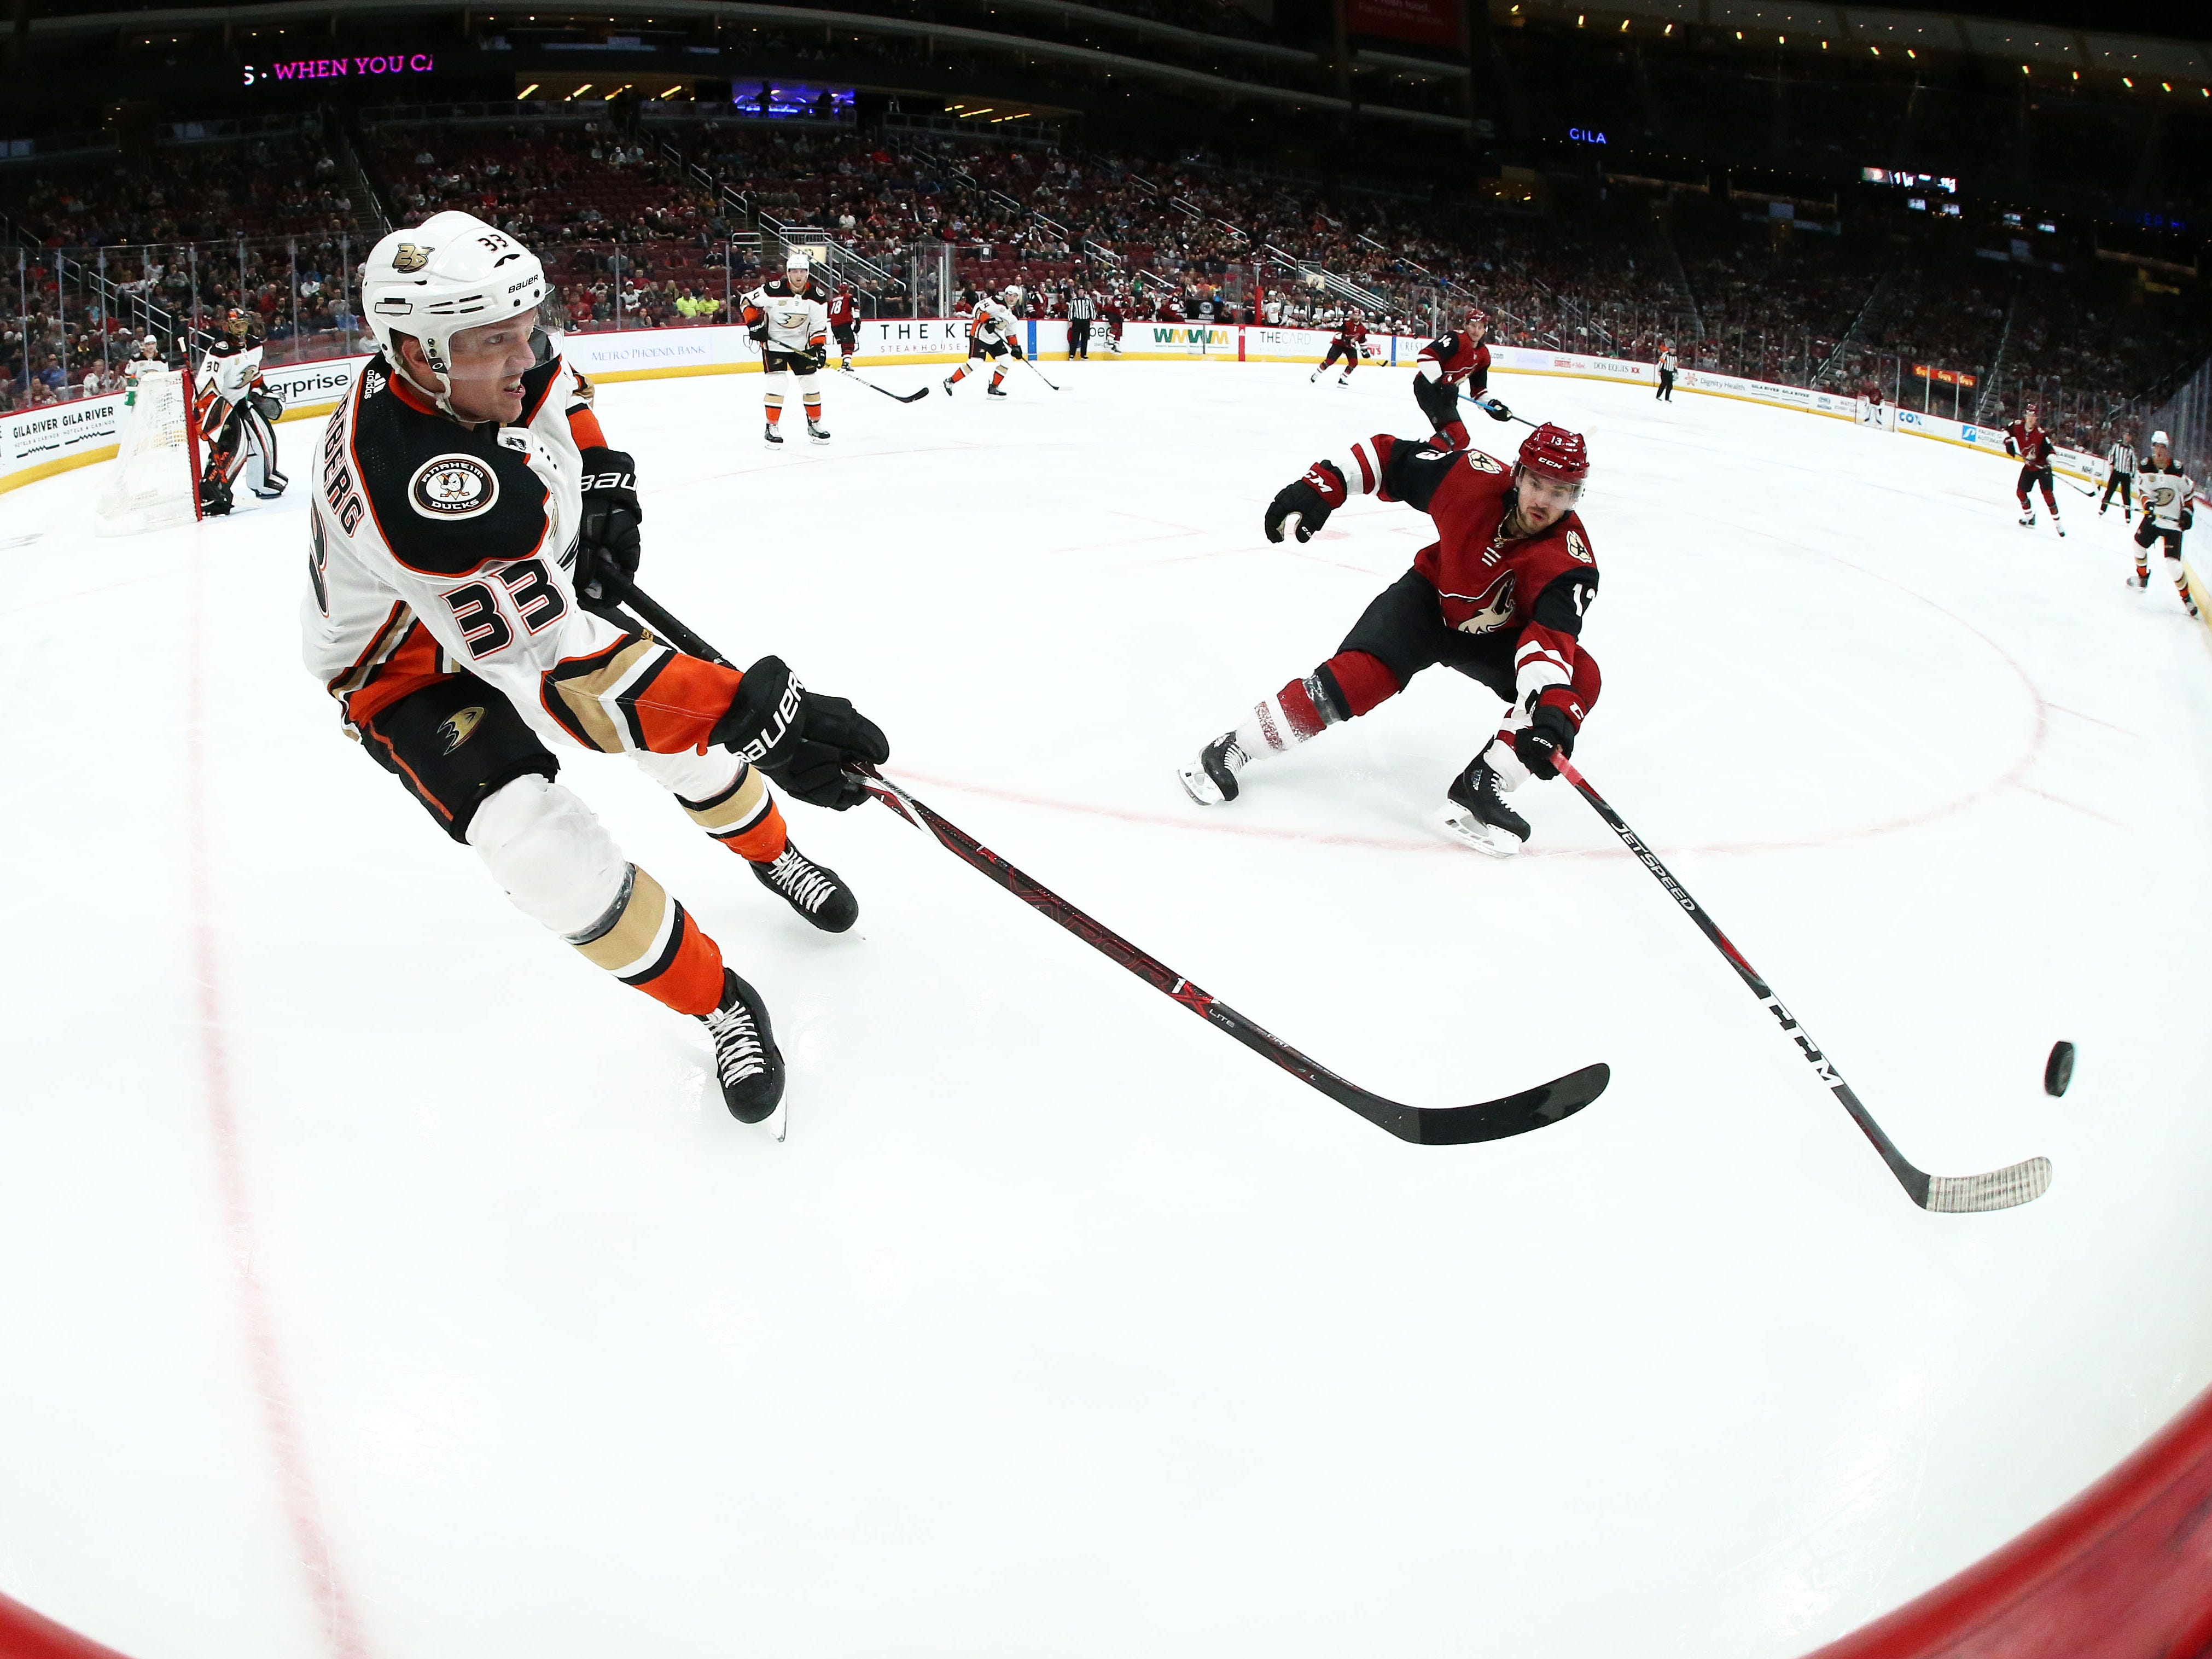 Anaheim Ducks right wing Jakob Silfverberg (33) passes the puck against Arizona Coyotes center Vinnie Hinostroza (13) in the second period on Mar. 5, 2019, at Gila River Arena in Glendale, Ariz.